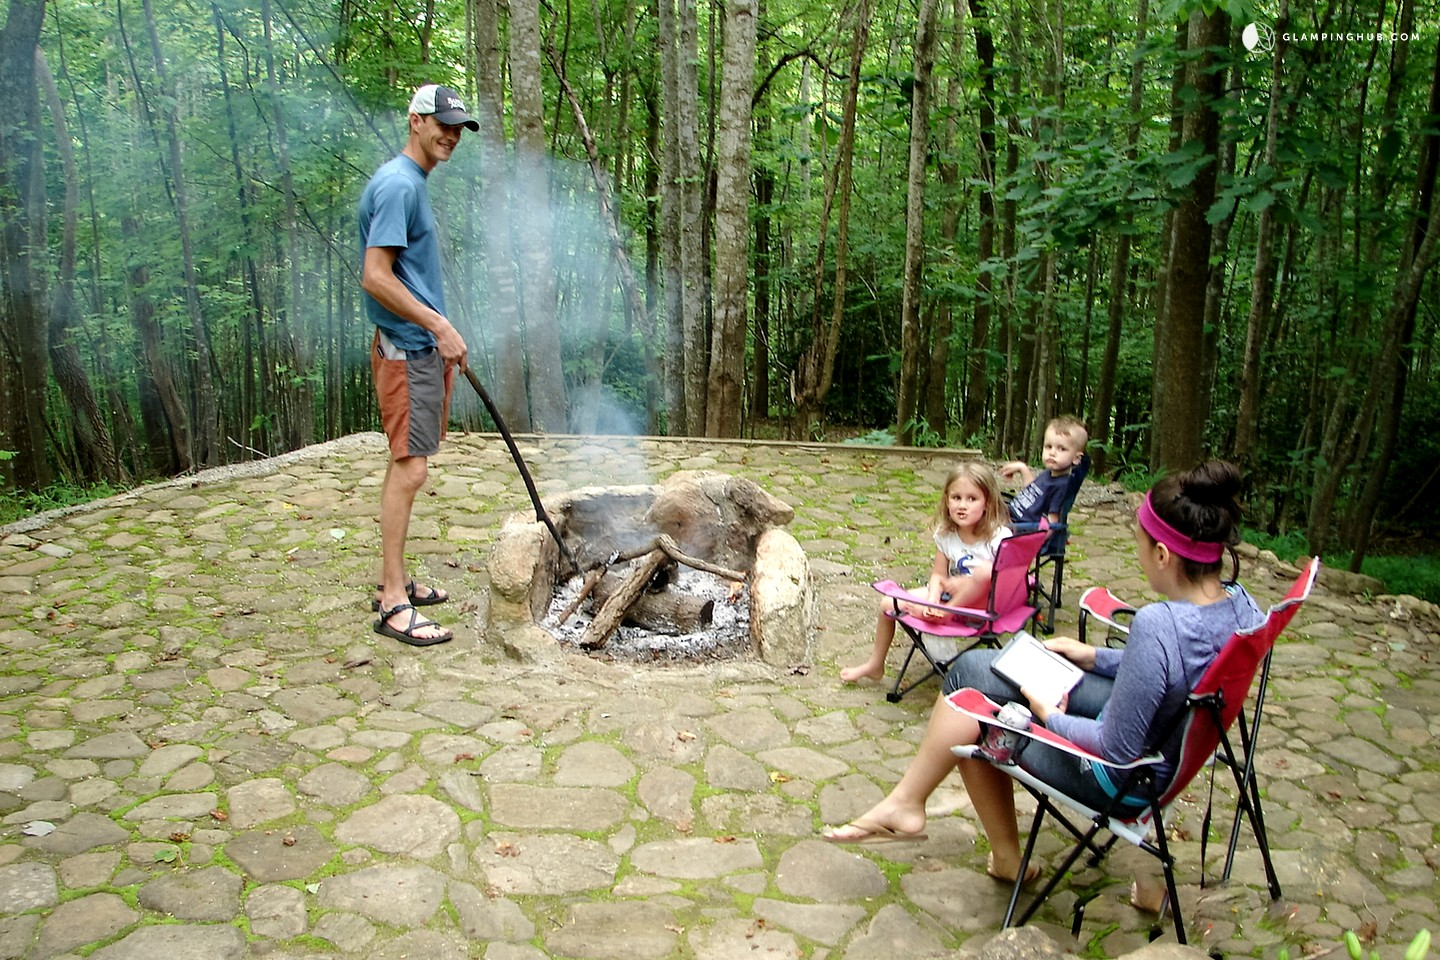 Luxury Tent Camping In North Carolina Glamping In North